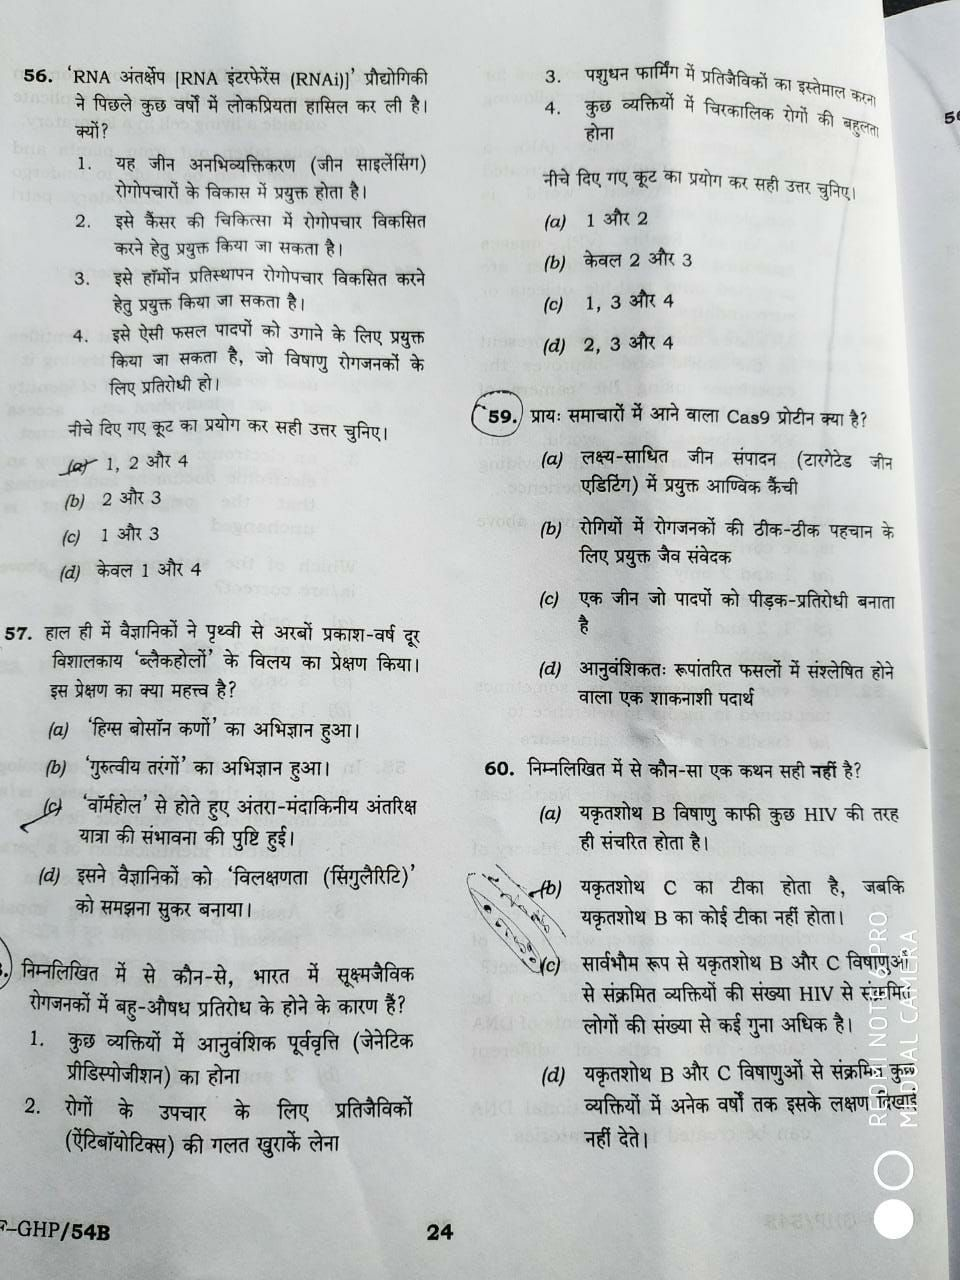 Pin By Anushri Yadav On Gk Questions And Answers Gk Questions And Answers Biology Notes Question Paper